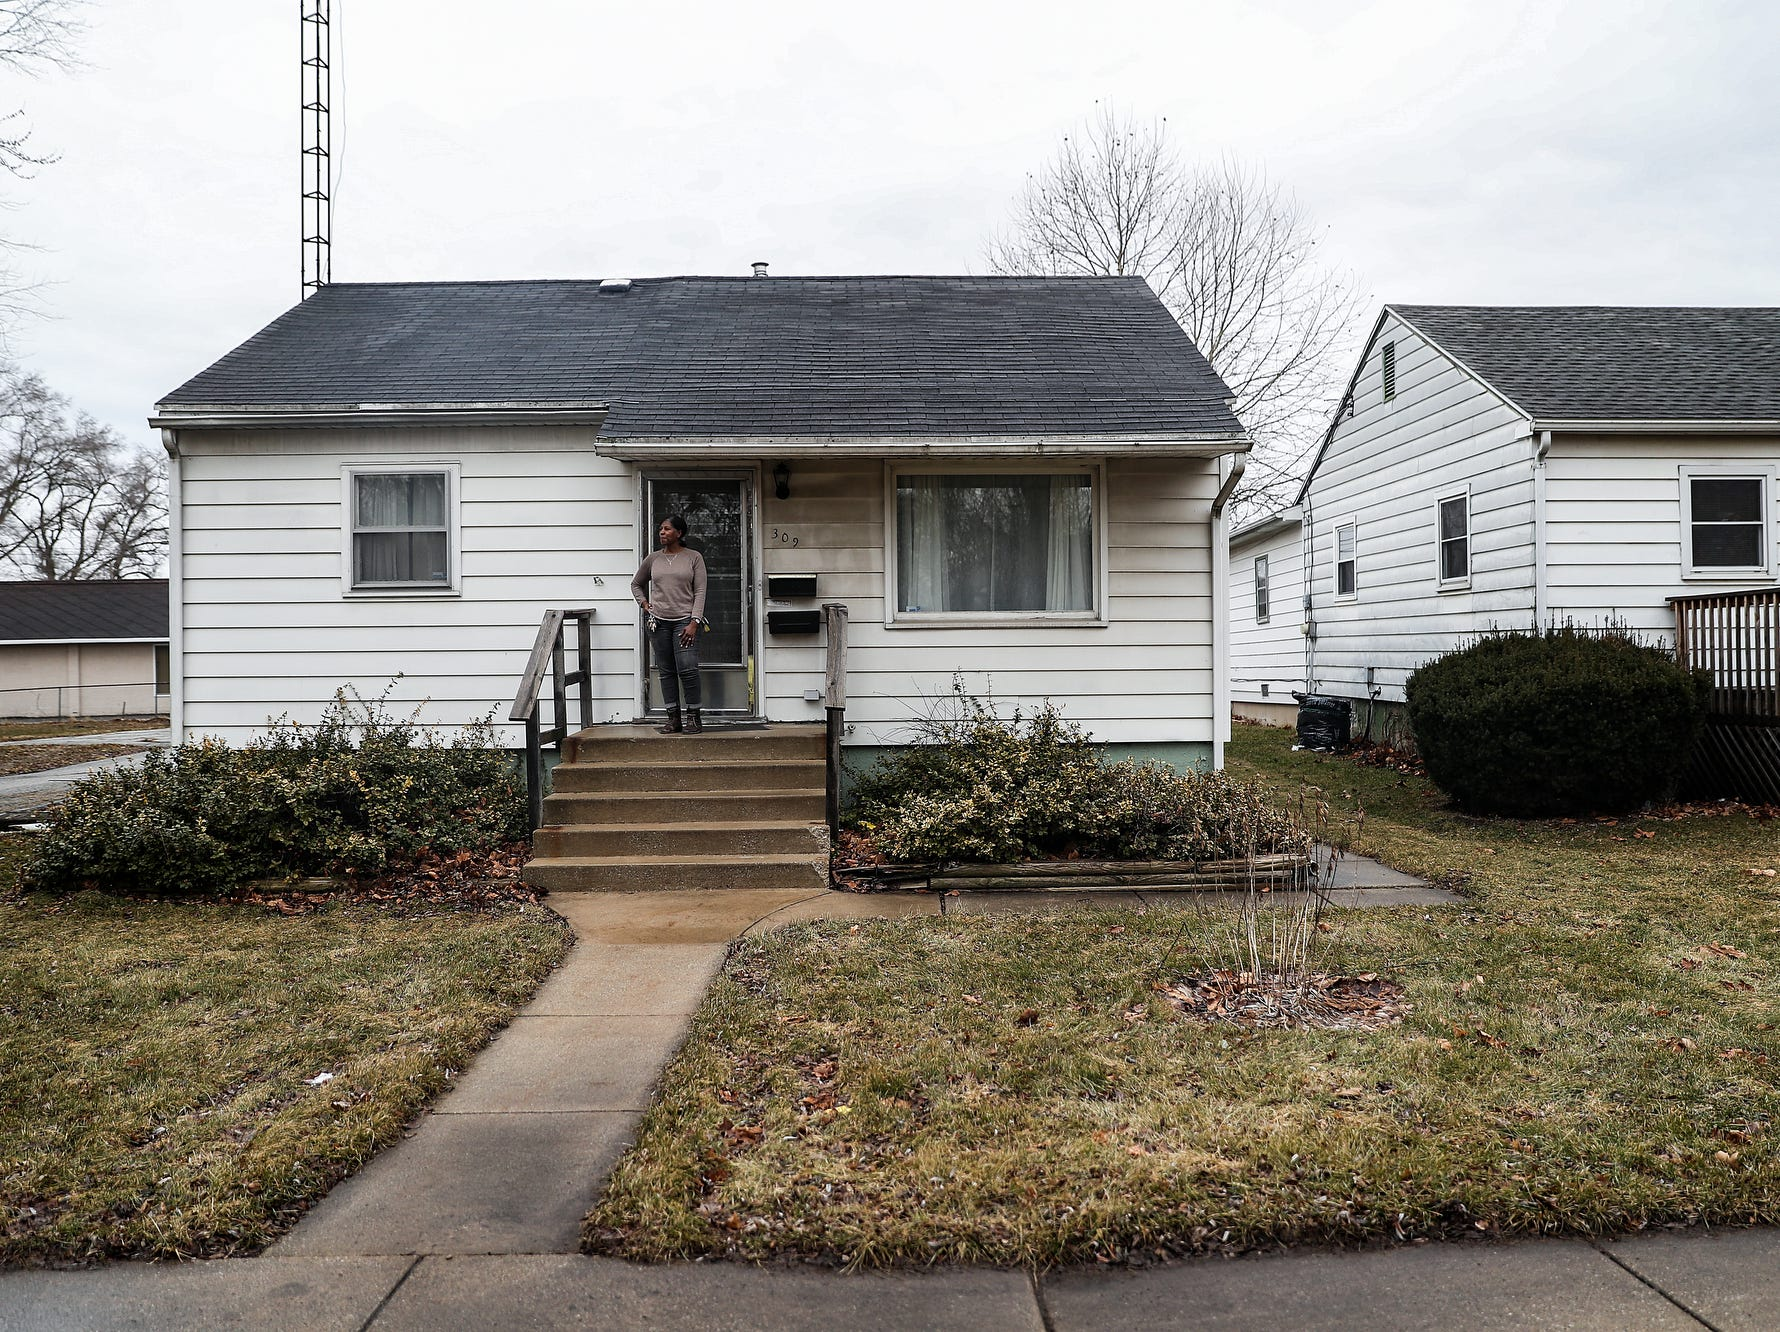 "Stacey Odom, a fourth-generation resident of west-side South Bend neighborhood LaSalle Park, poses for a picture on Wednesday, March 13, 2019. When Odom asked Mayor Pete Buttigieg for $300,000 for a grant program to help community members repair their homes, Buttigieg countered with $650,000, which became the Home Repair Pilot Program. ""ThatÕs the kind of person you want in office,"" she said. ""Someone who is looking at your best interests. And if theyÕre not, if you go to them and tell them what your interests are, then they will take your concerns and make them their concerns."""